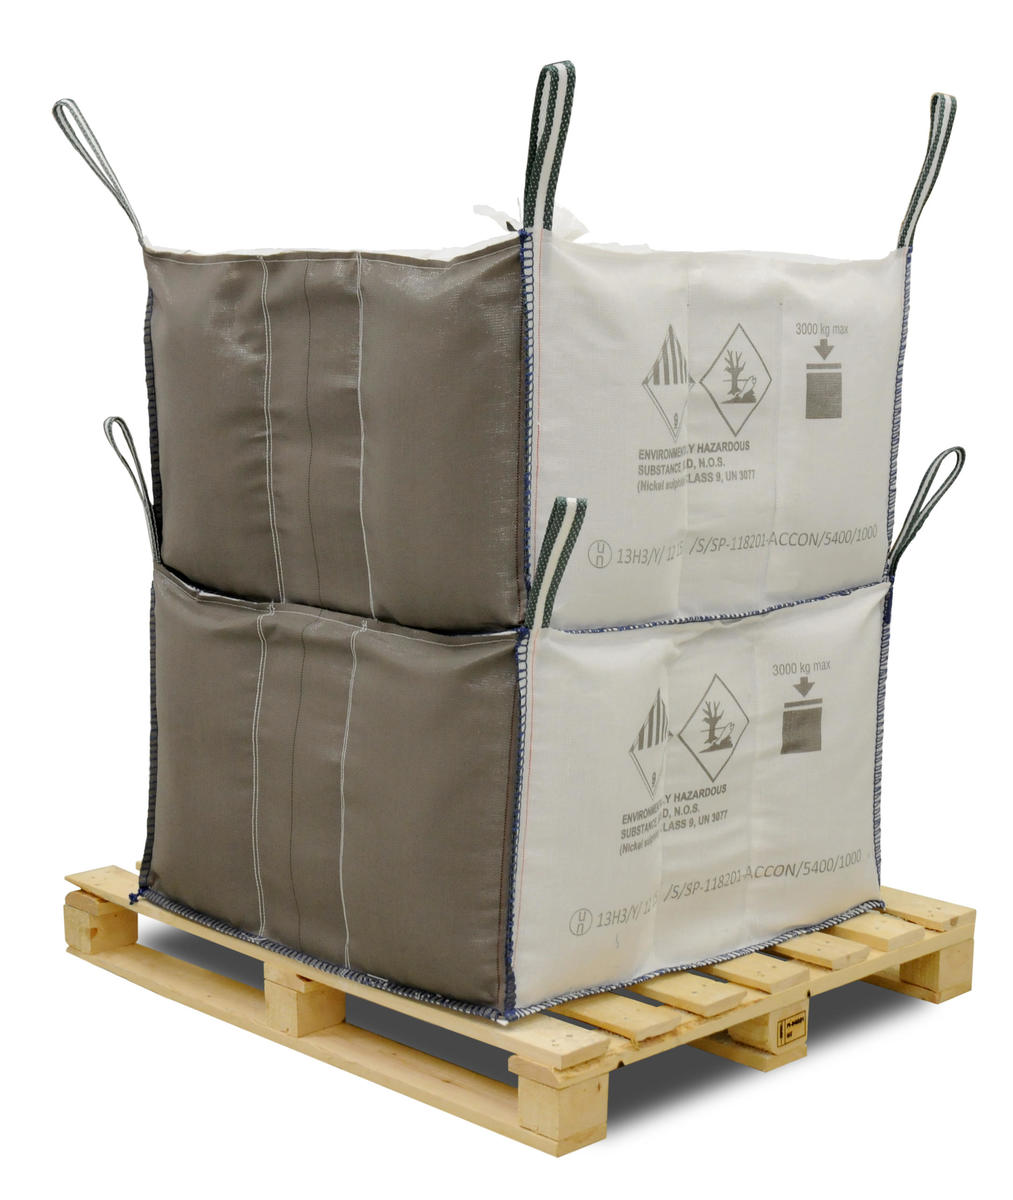 fibc for dangerous goods un fibc big bags fibc big bag and sacks products. Black Bedroom Furniture Sets. Home Design Ideas